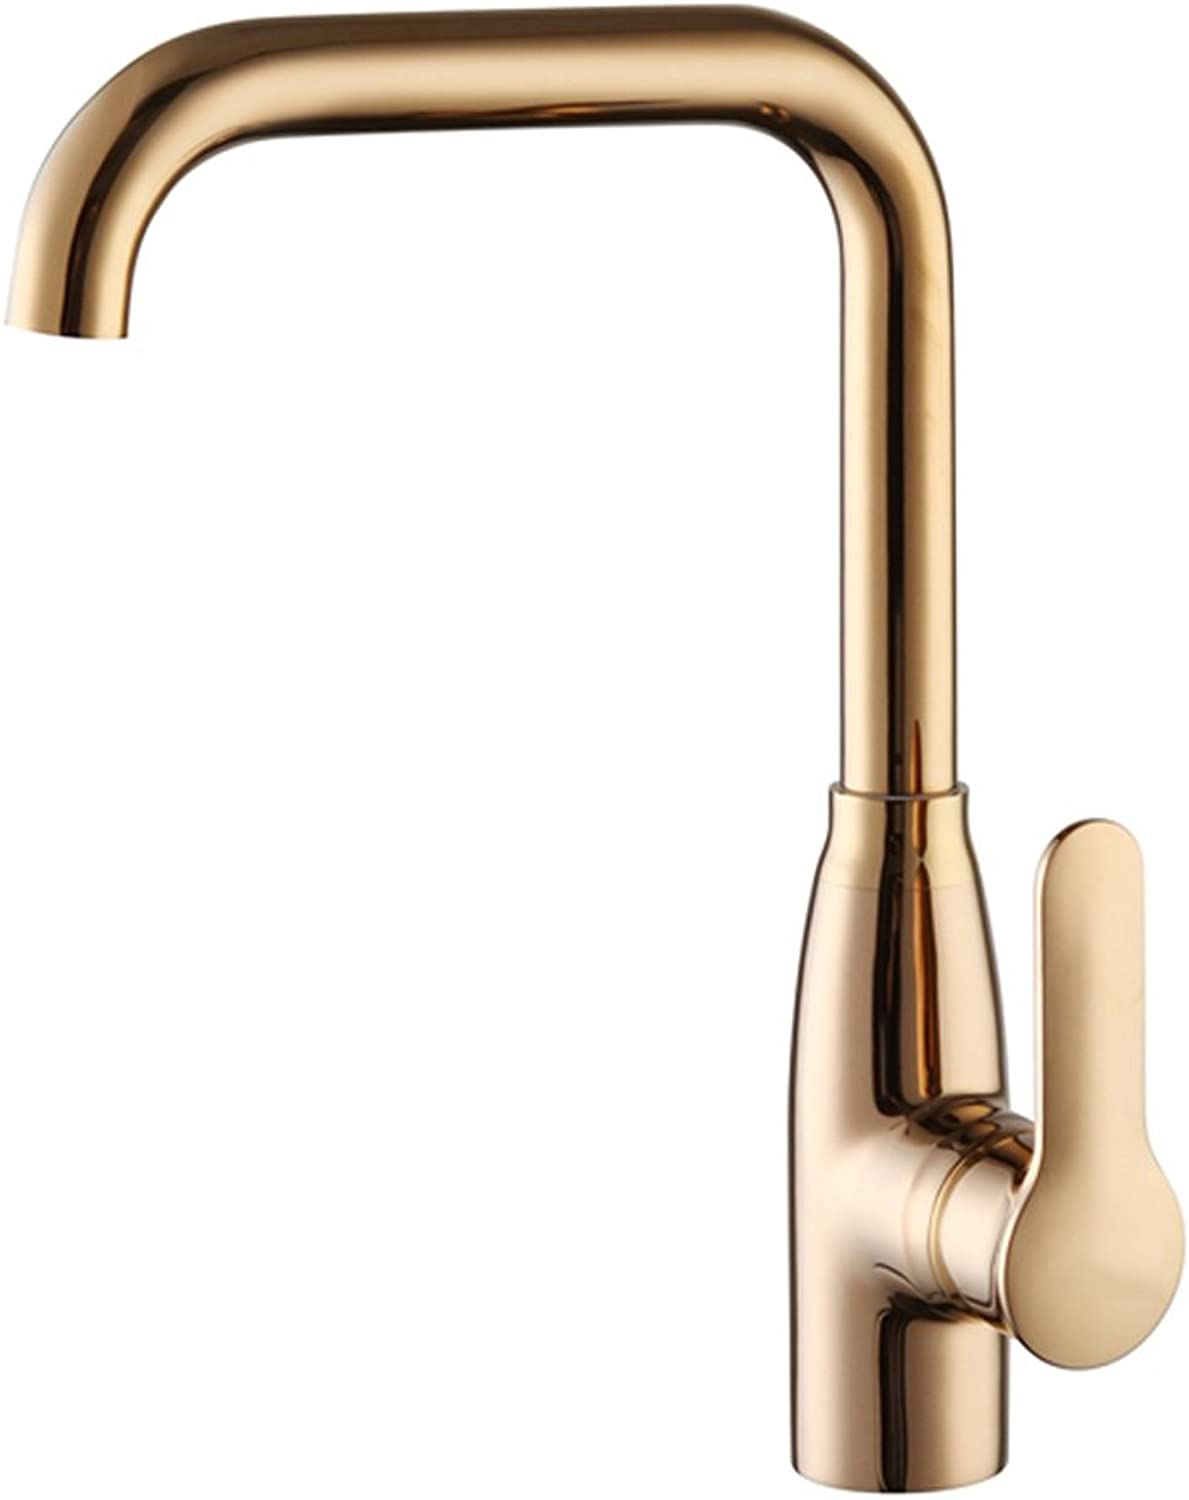 FJH Faucet Copper Hot and Cold redating Single Hole Kitchen Sink Dishwashing Aperture 32MM to 40MM Can Be Installed